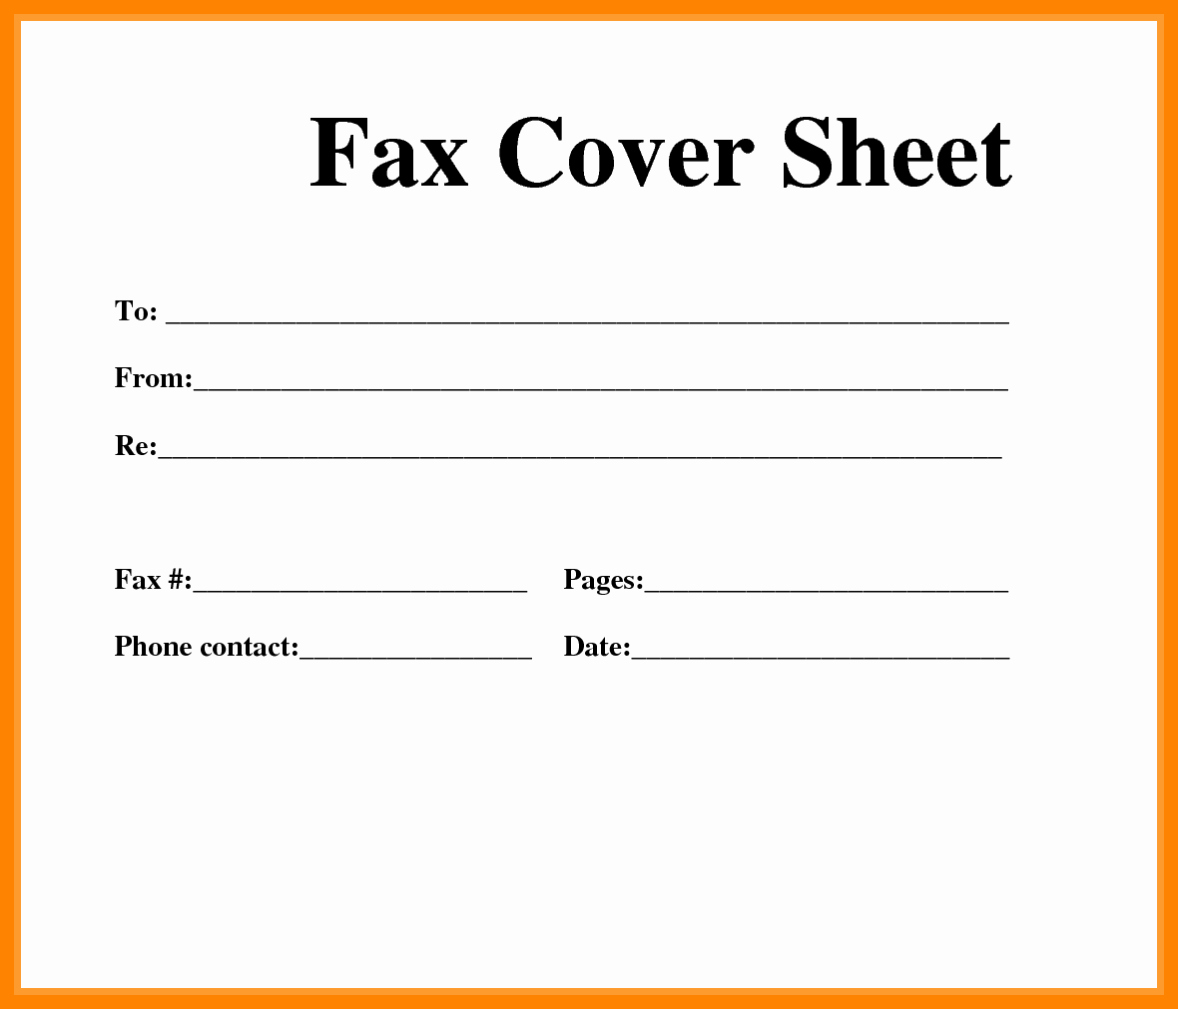 Professional Fax Cover Sheets Luxury Basic Fax Cover Sheet